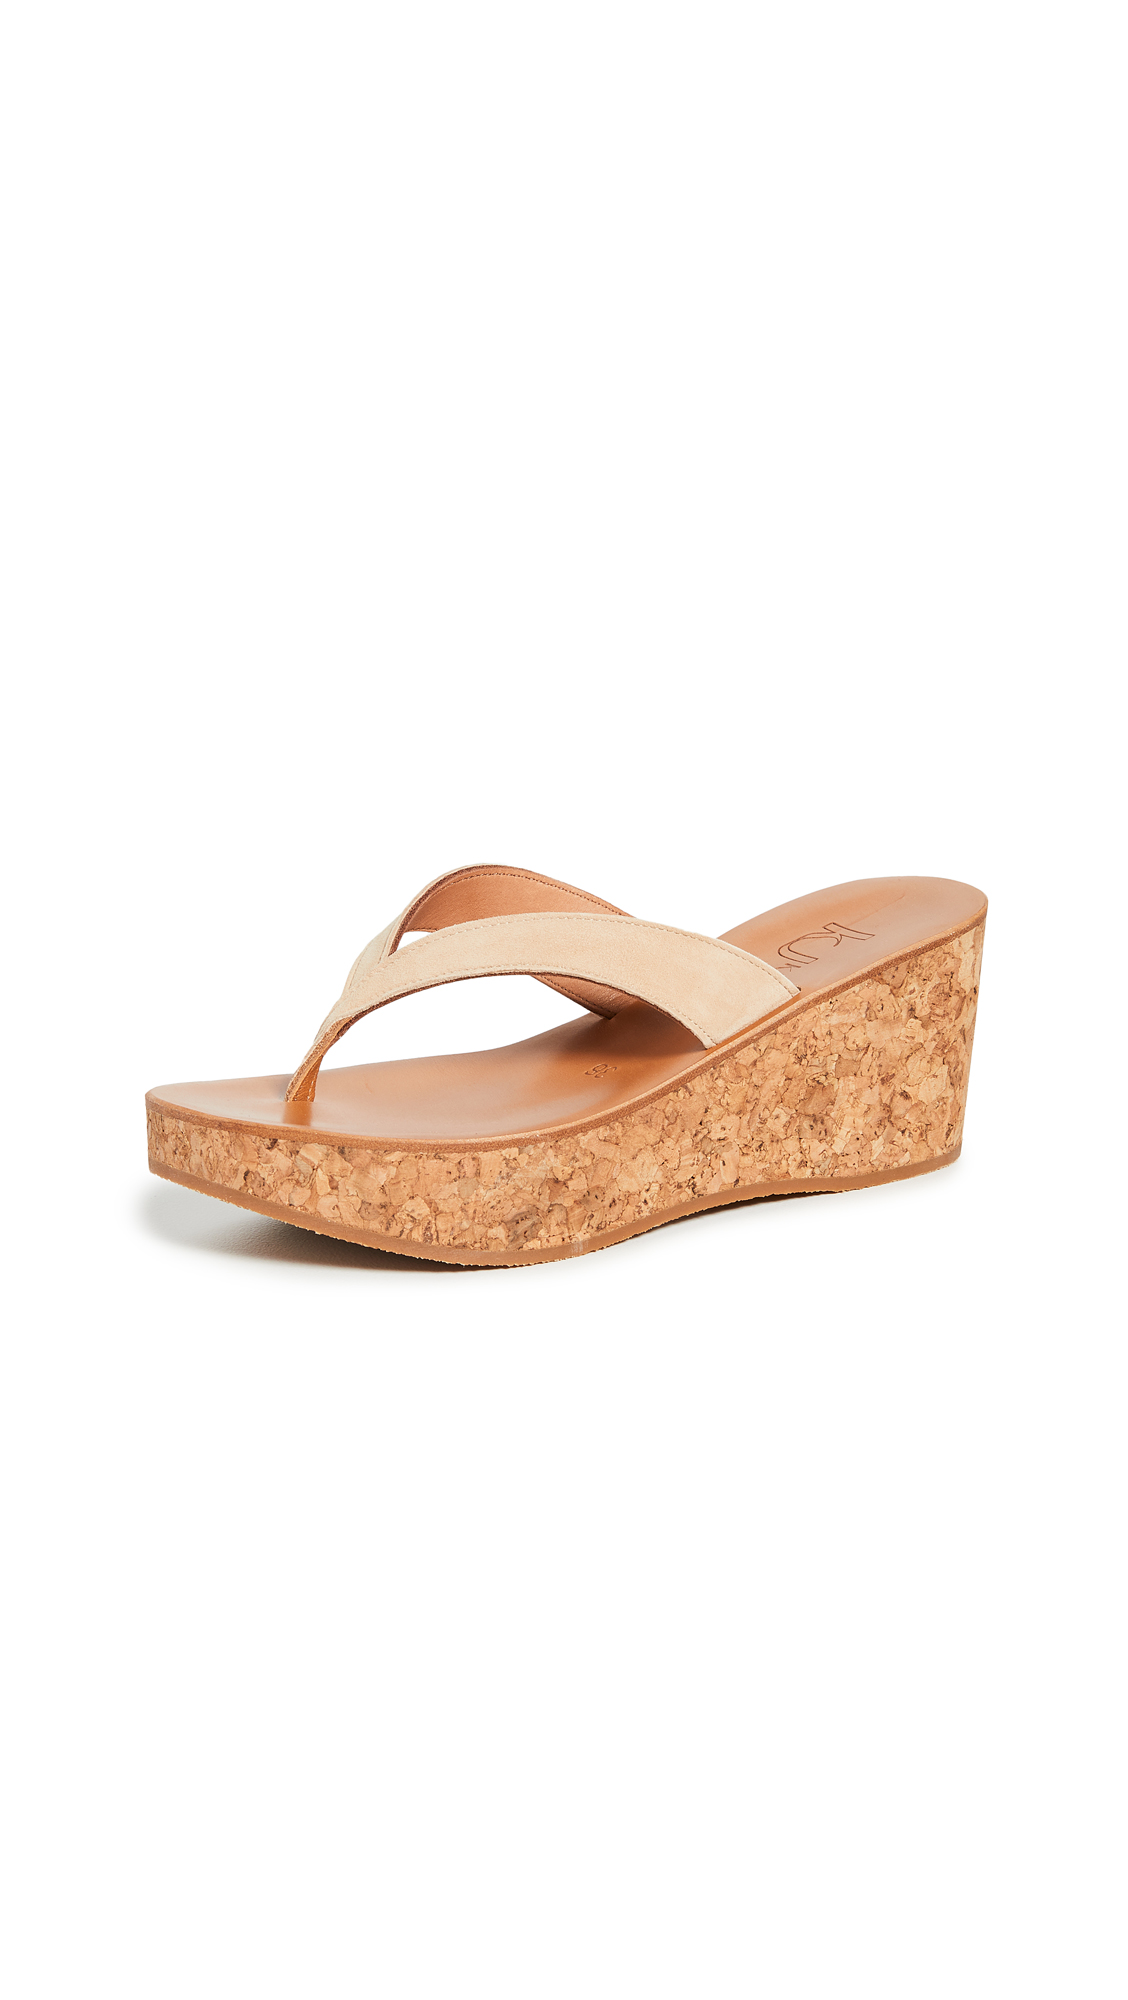 K. Jacques Diorite Thong Wedges – 40% Off Sale